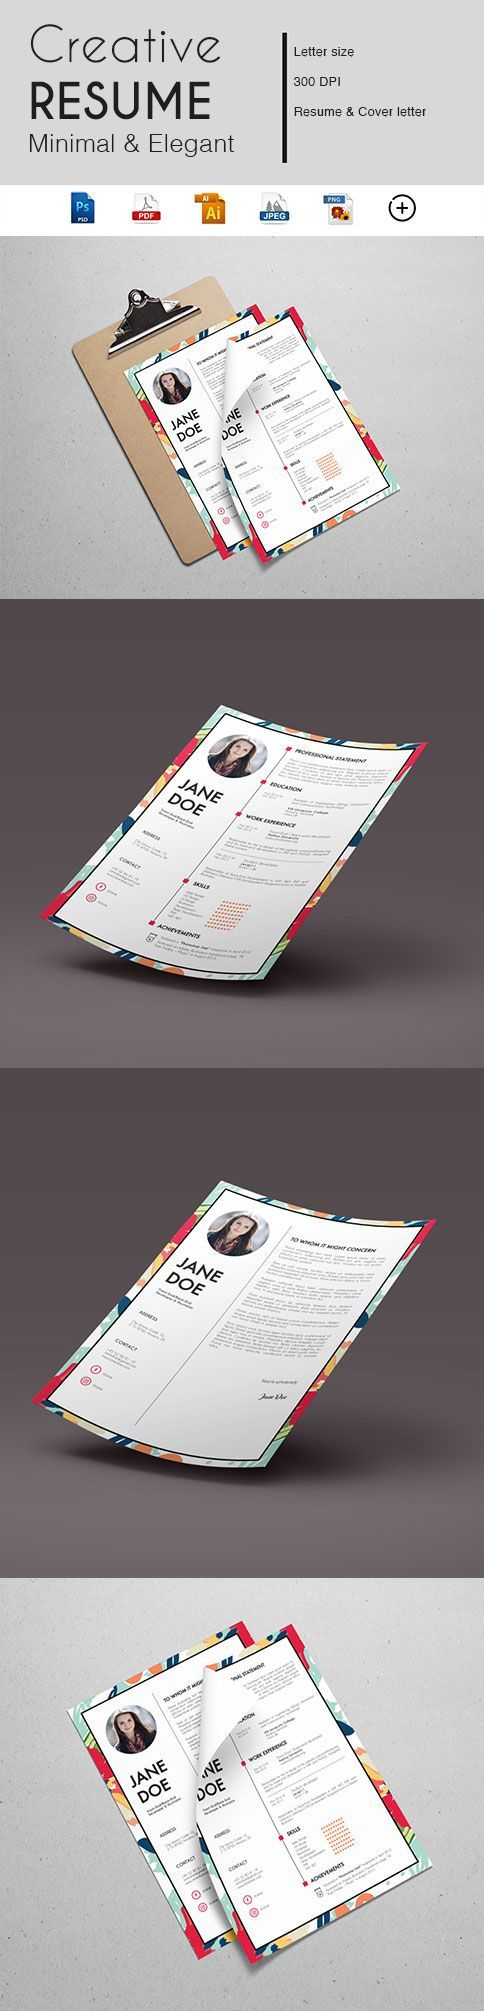 CV Templates Best Modern Resume Design Bundle e Page Editable Resumes with Cover Letter Instant Download